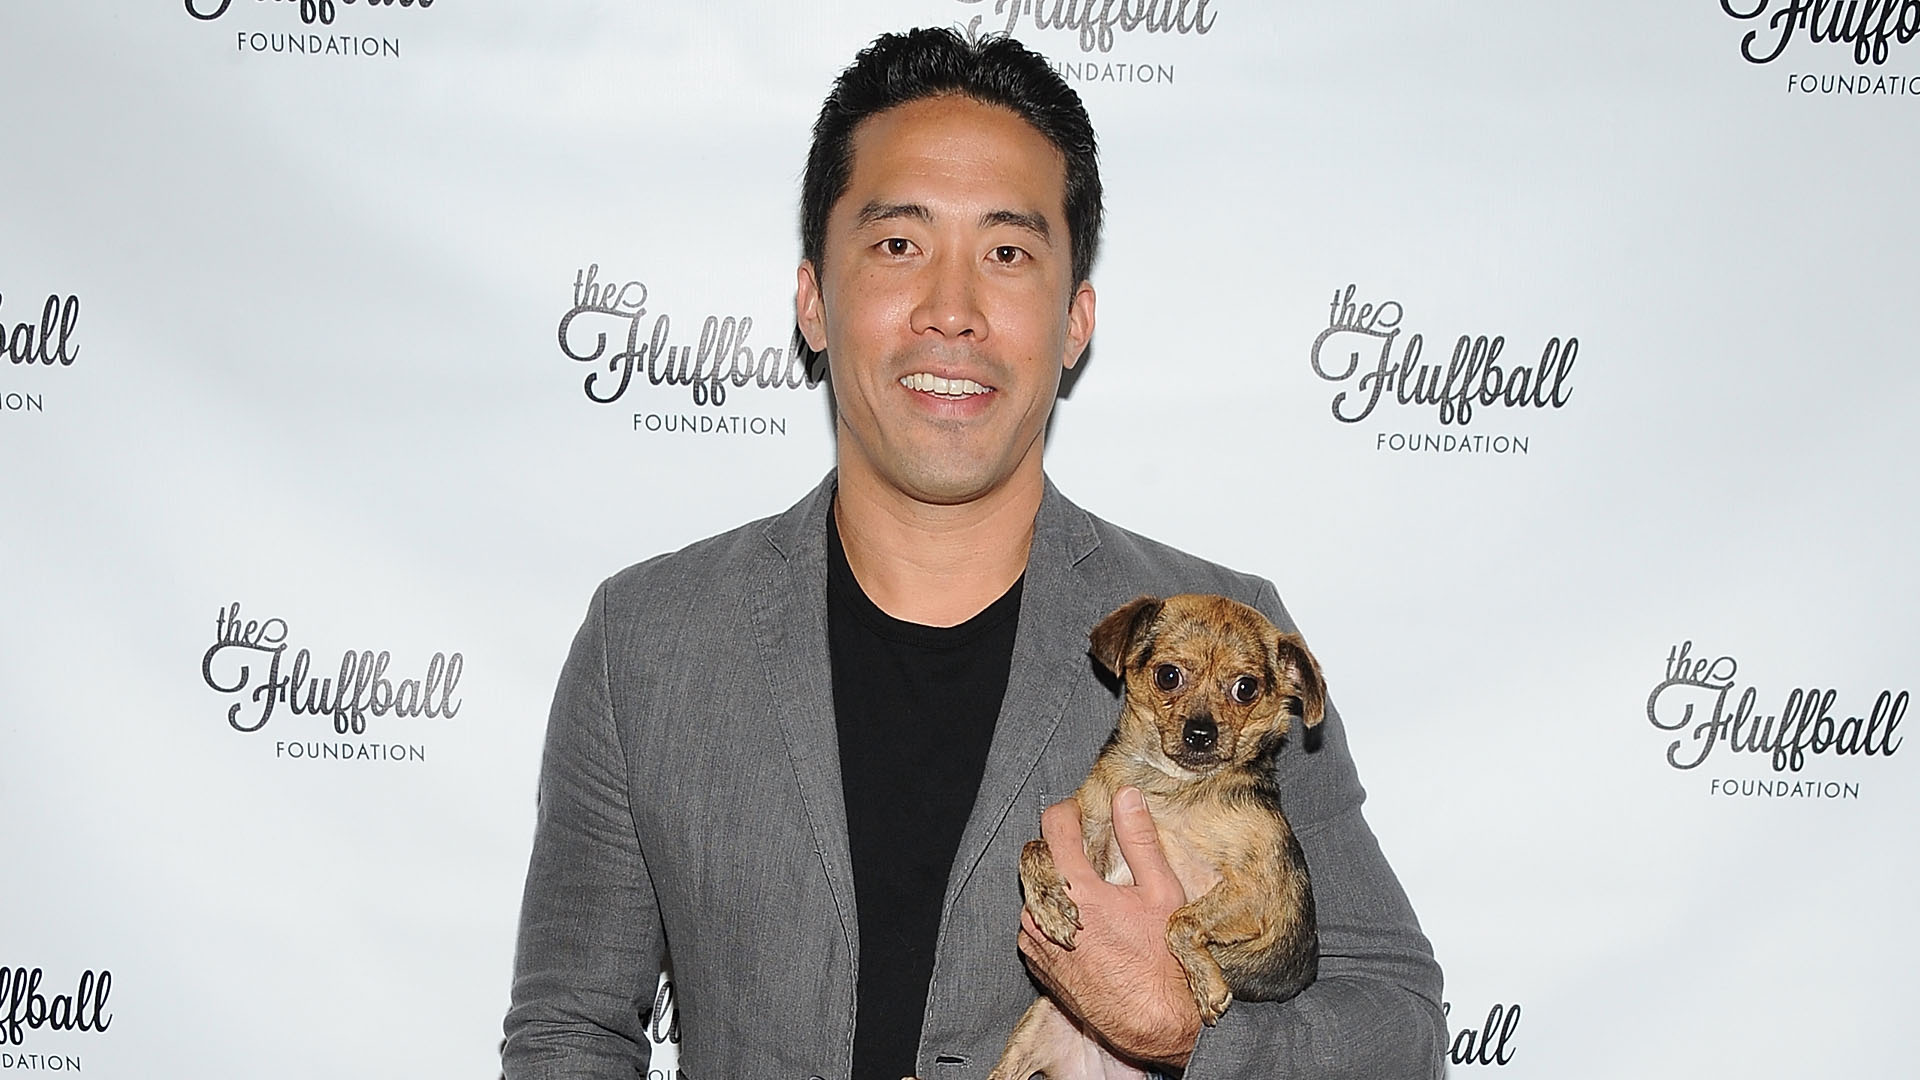 Founder of Animal Hope and Wellness Marc Ching attends The Fluffball 2015 on Oct. 3, 2015 in Los Angeles. (Angela Weiss/Getty Images for The Fluffball Foundation)